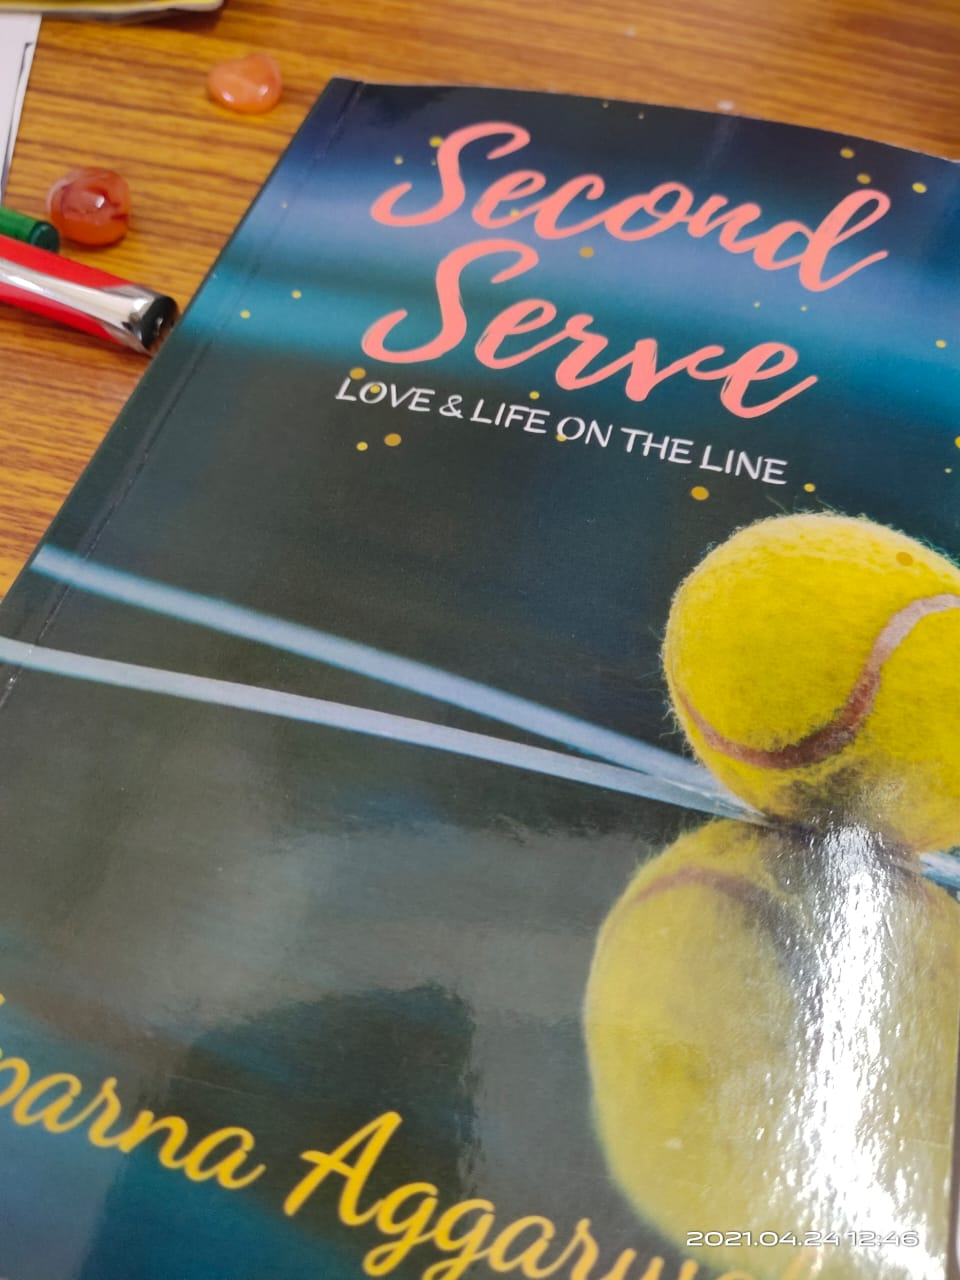 Second Serve by Aparna Aggarwal – Book Review